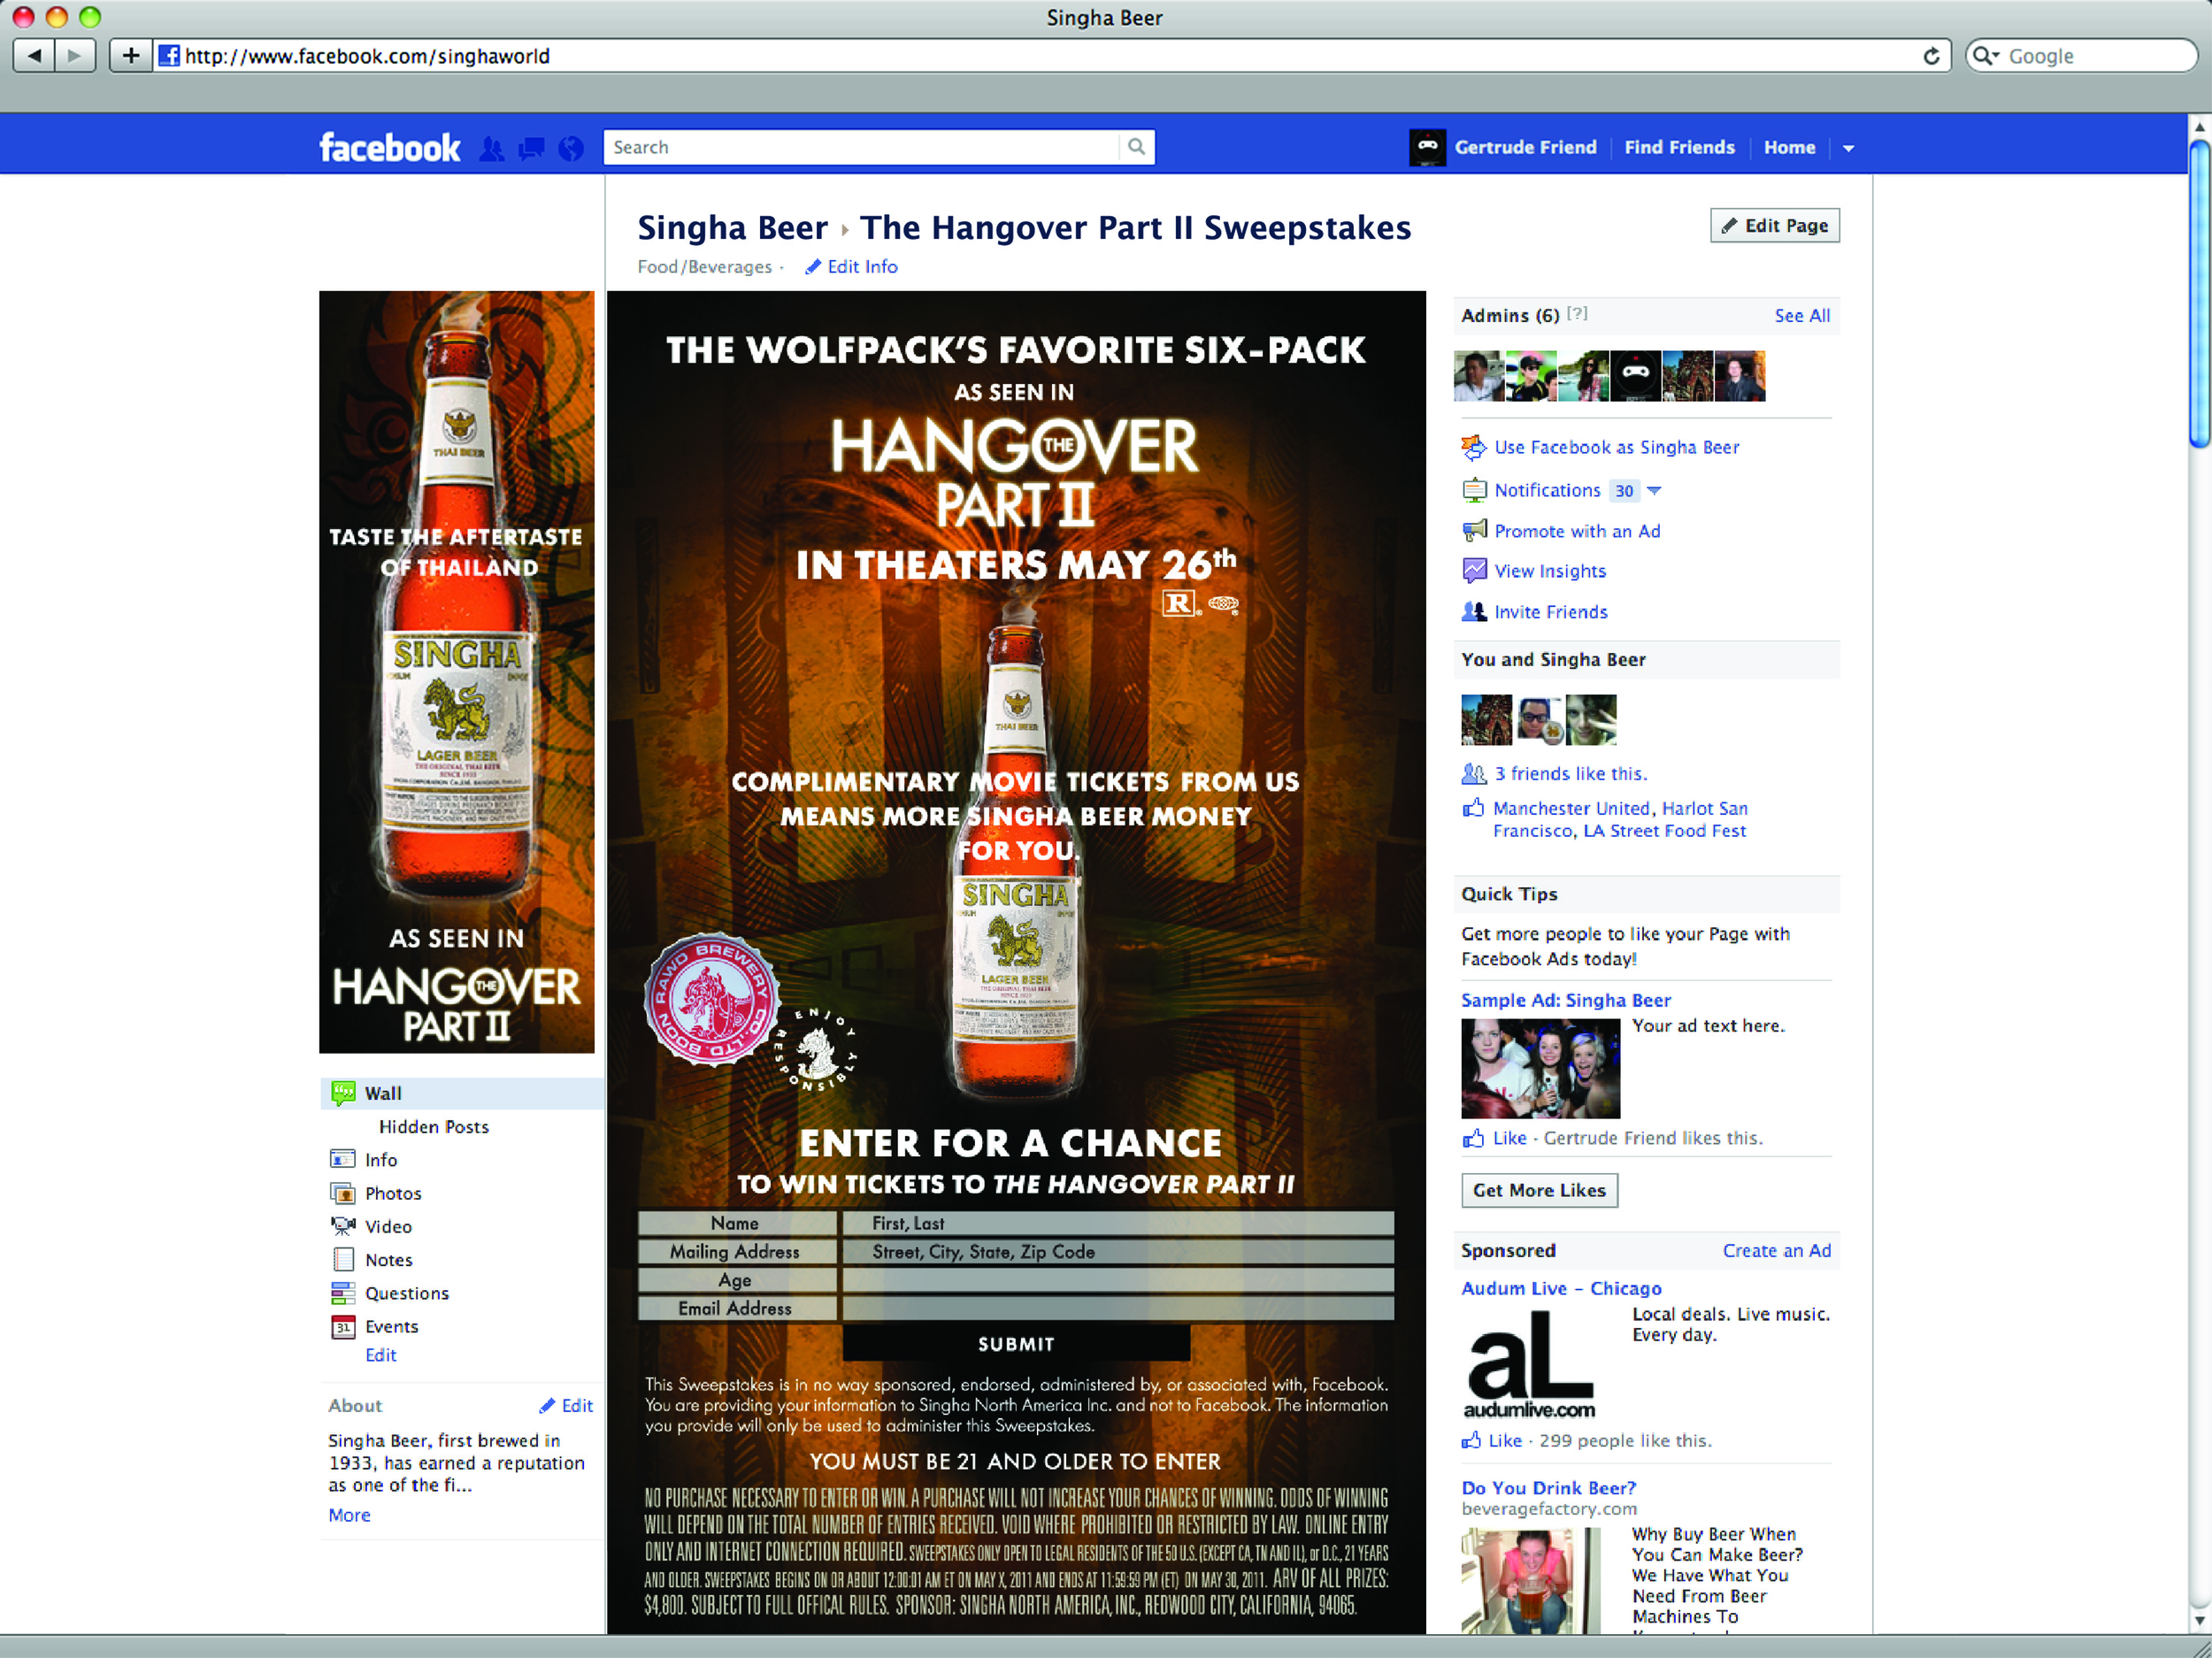 Singha Beer03_The Hangover Part II_Facebook Sweepstakes.jpg